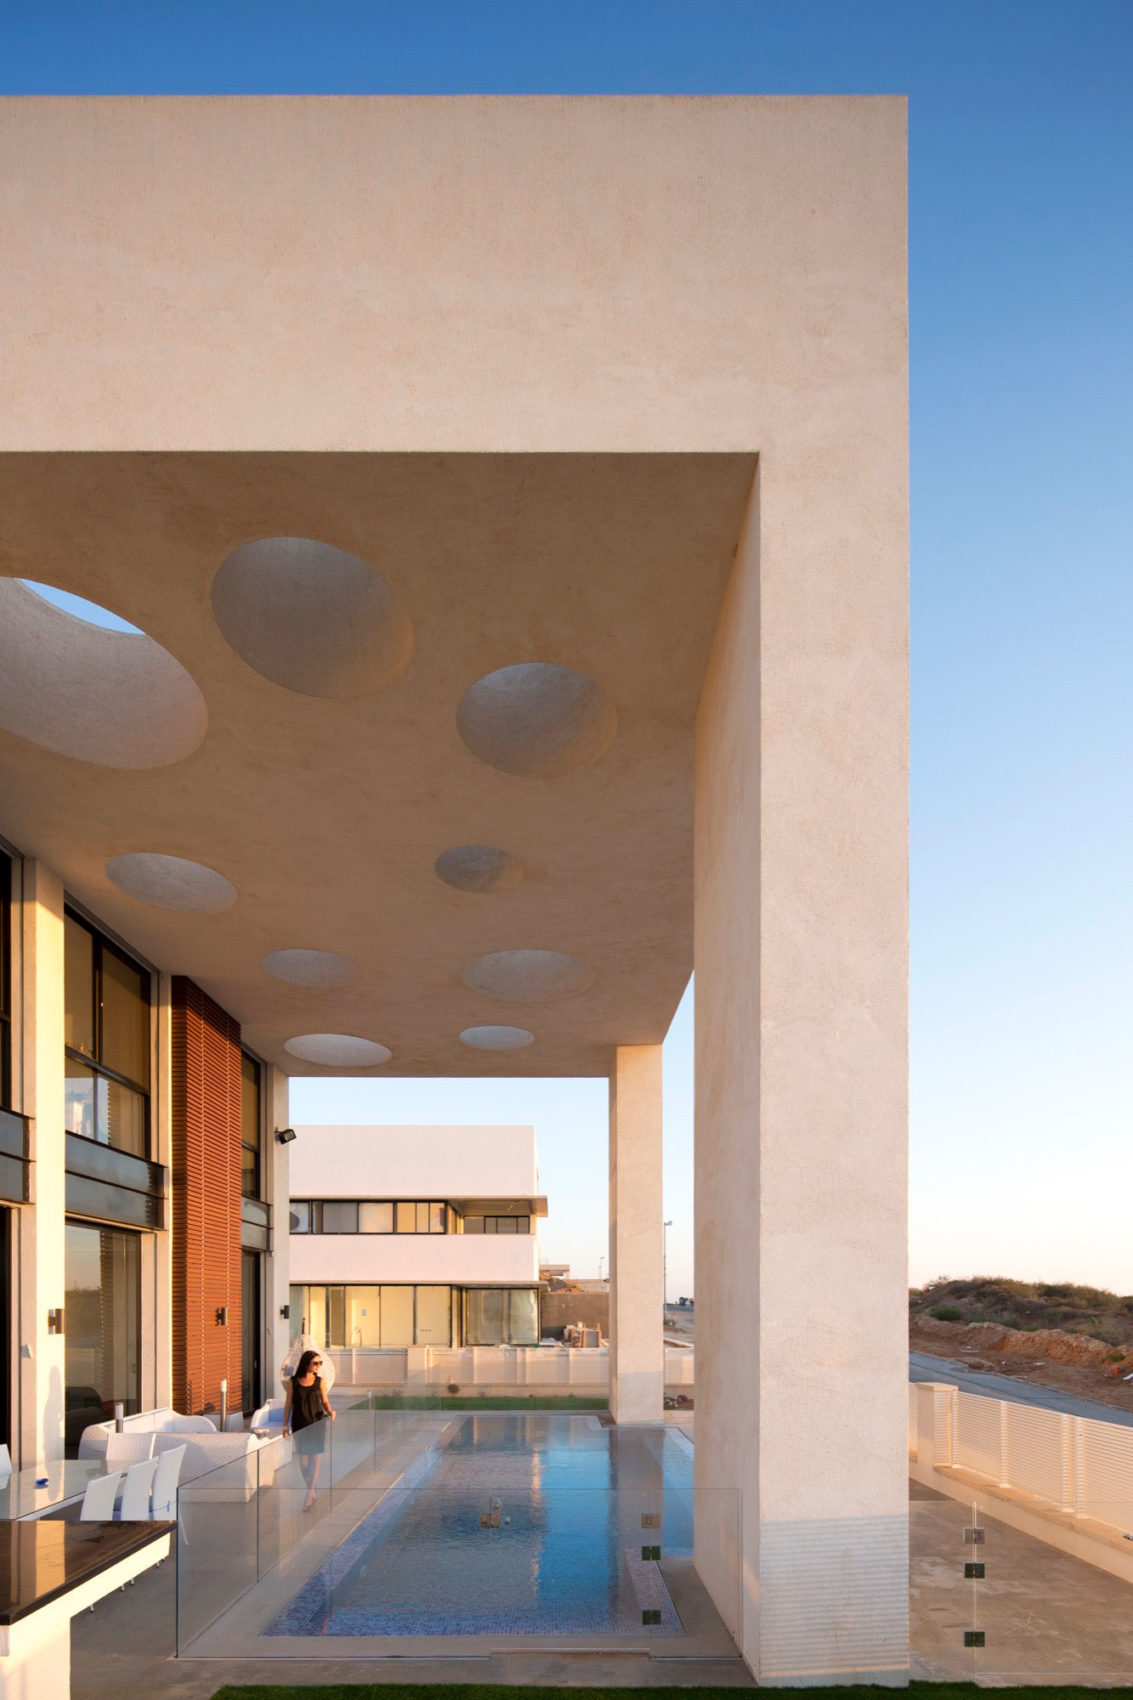 A House in Irus by Dan and Hila Israelevitz Architects (4)